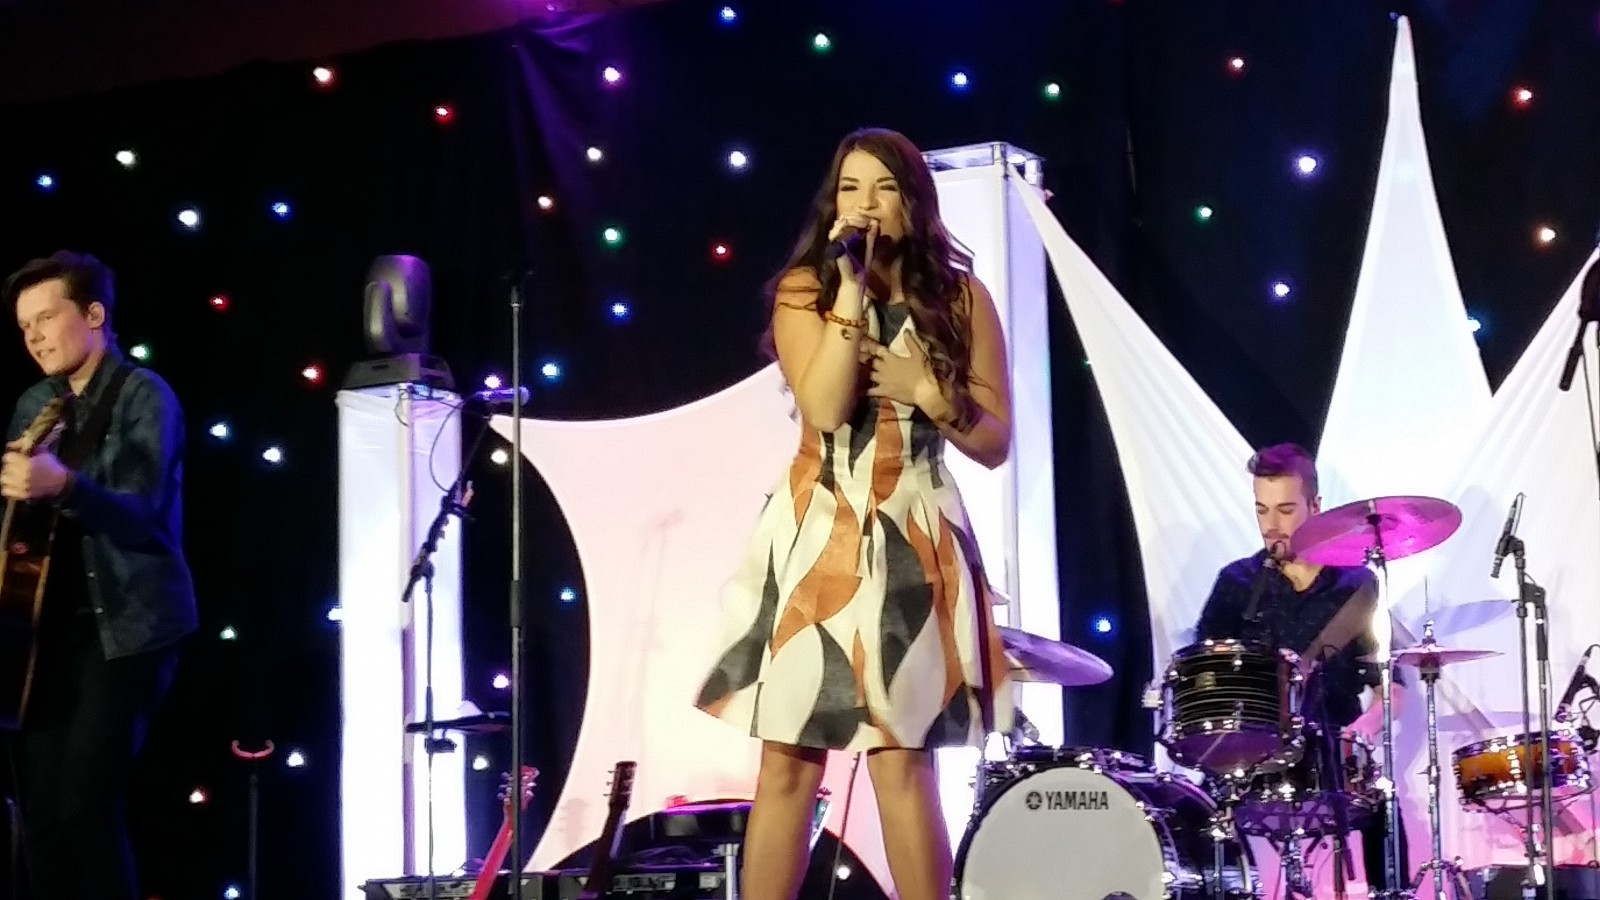 CCMA Female Vocalist, Jess Moskaluke at the STARS GALA.